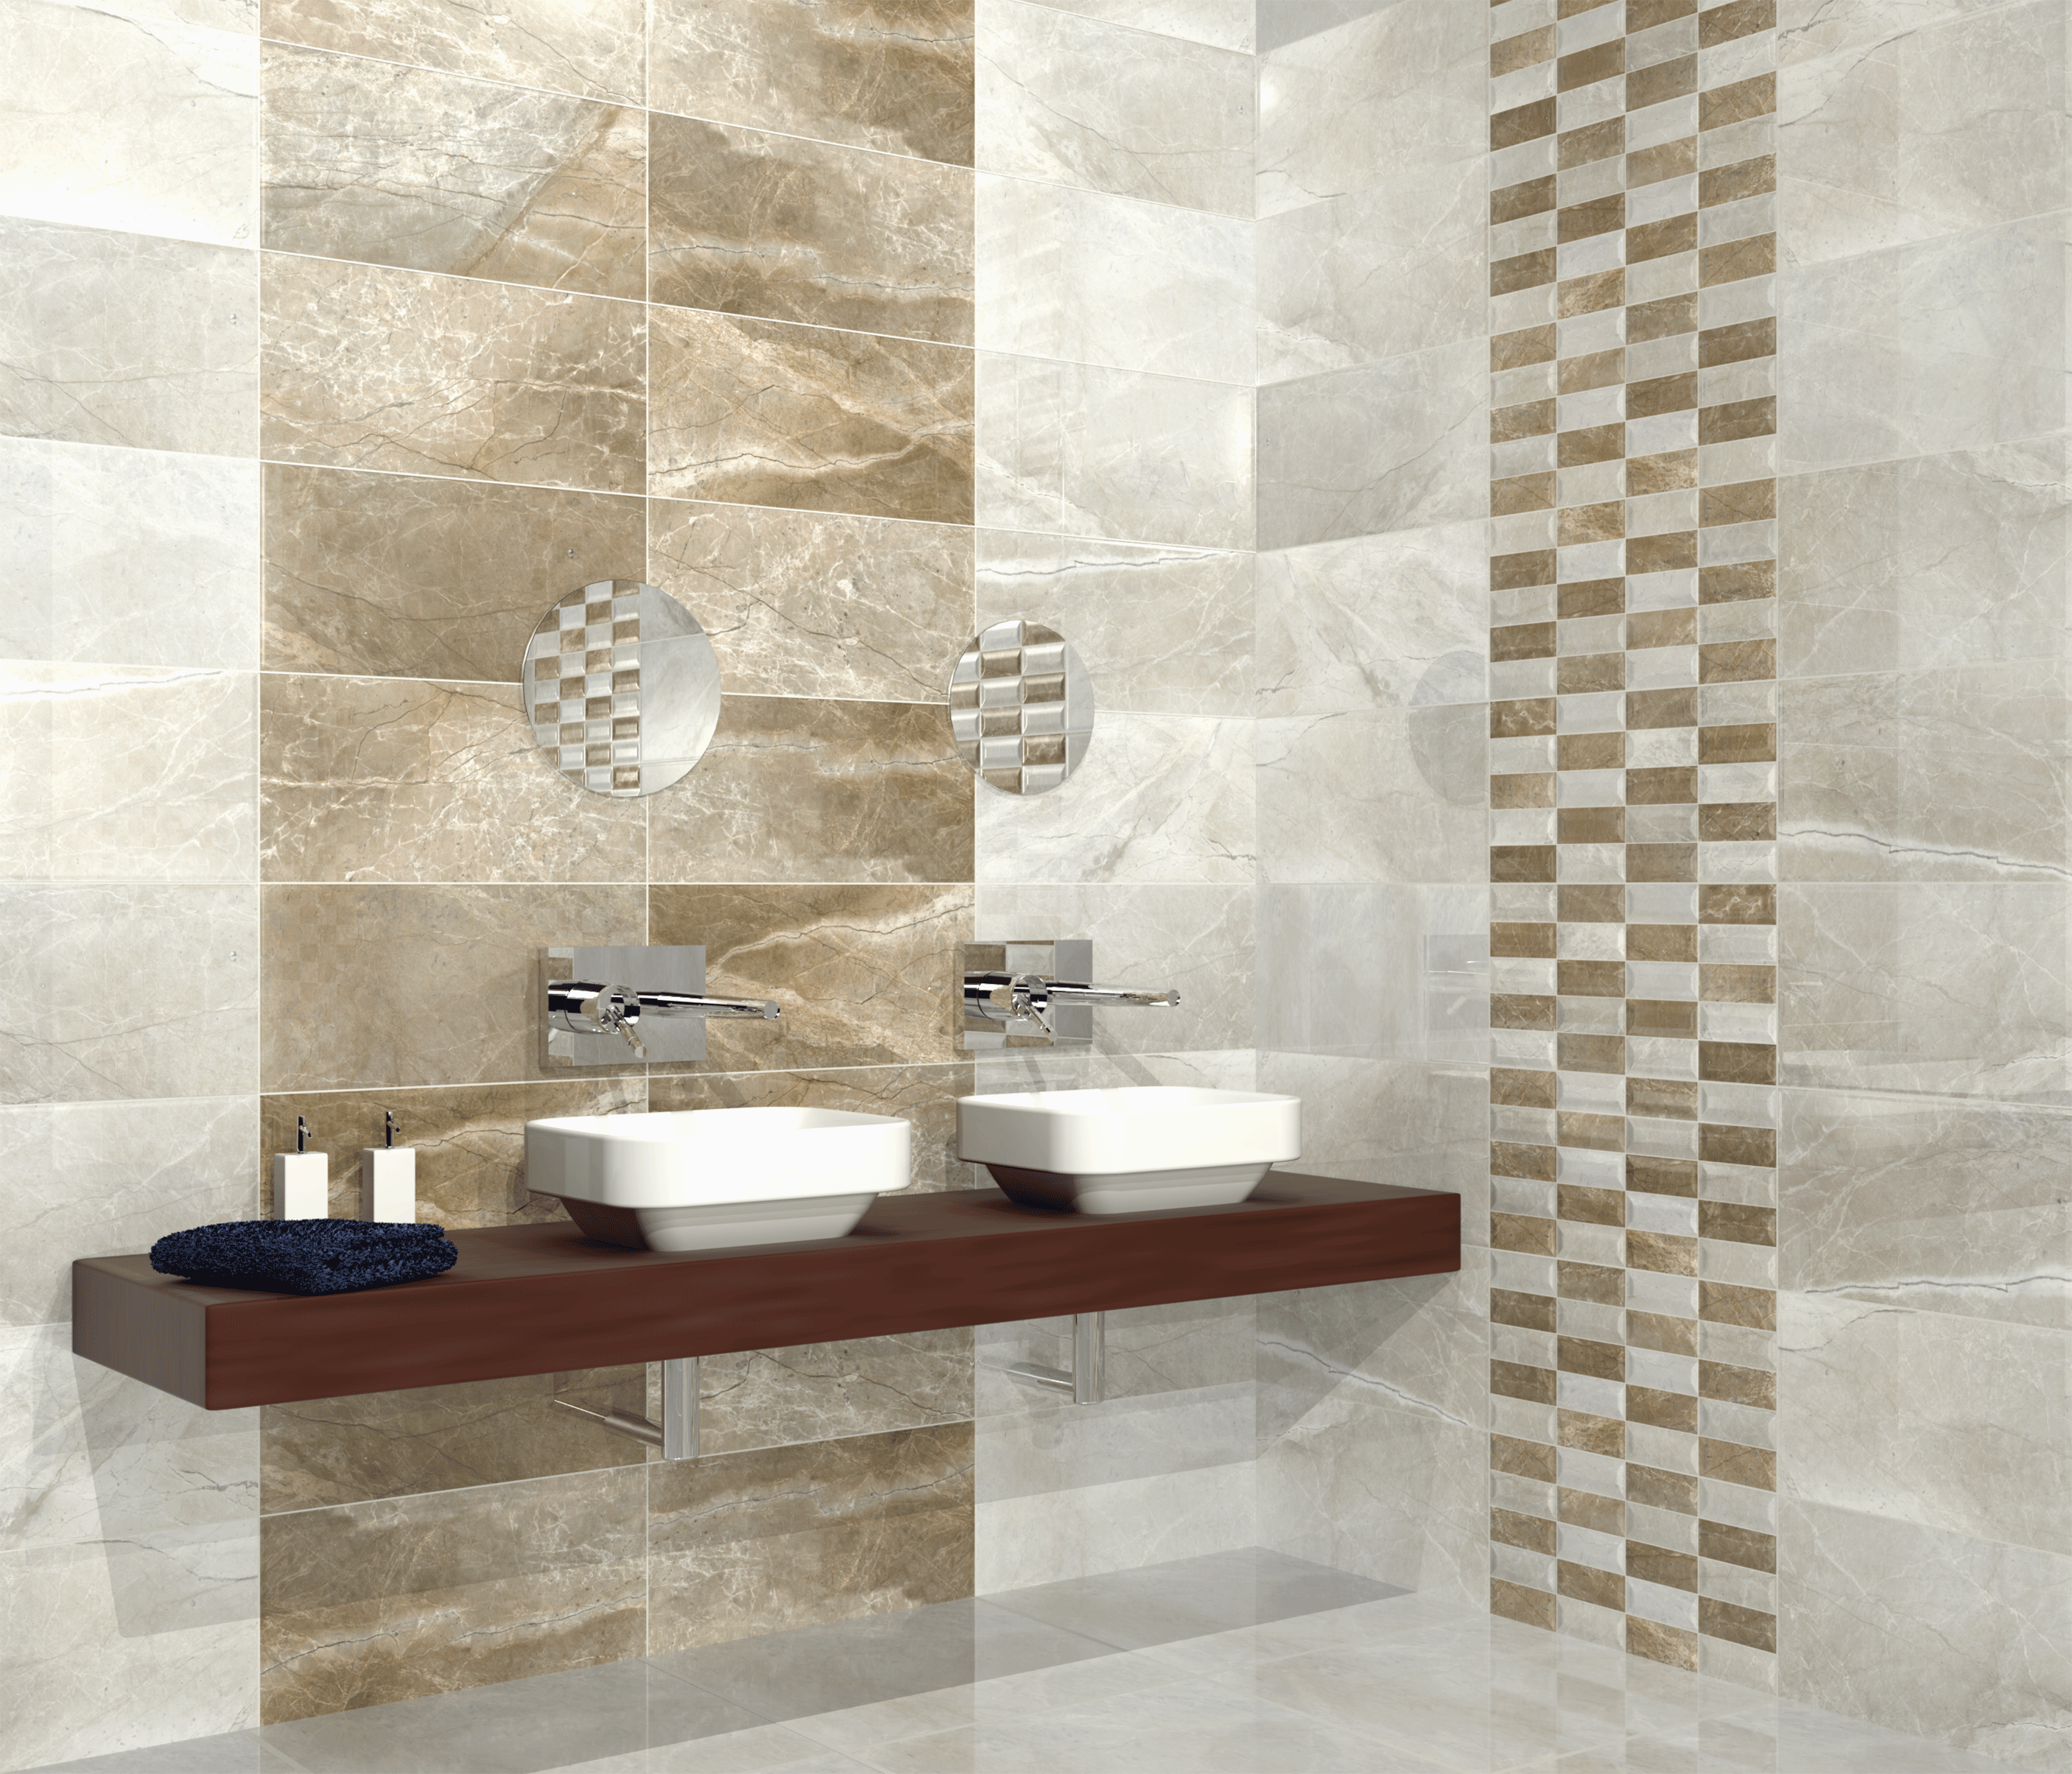 How to Tile a Bathroom Walls as well as Shower/Tub Area | Tiles ...